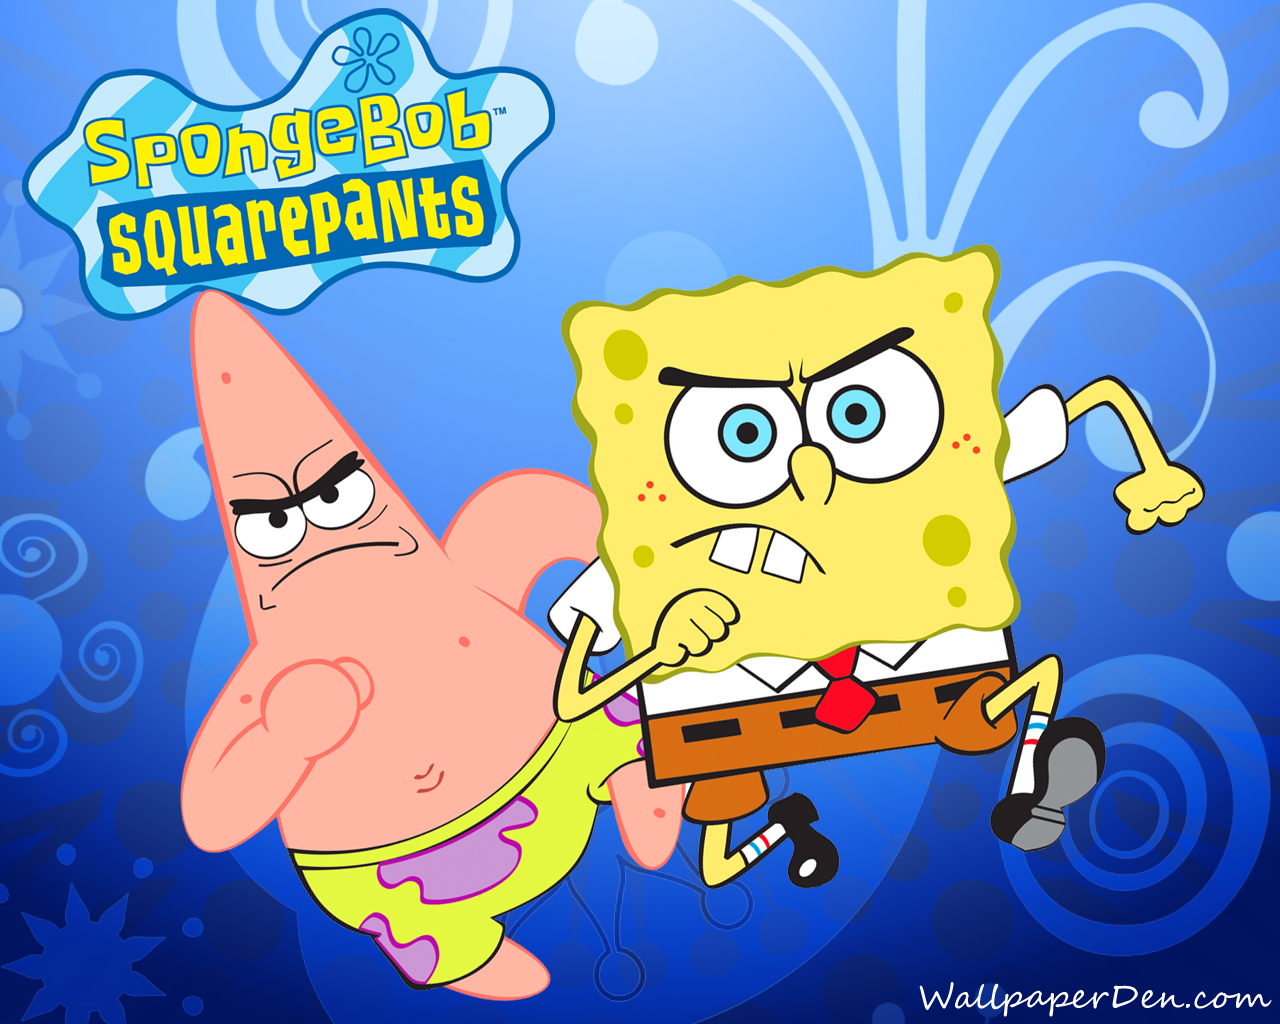 Spongebob And Patrick Best Friends Forever Quotes Images Free Download